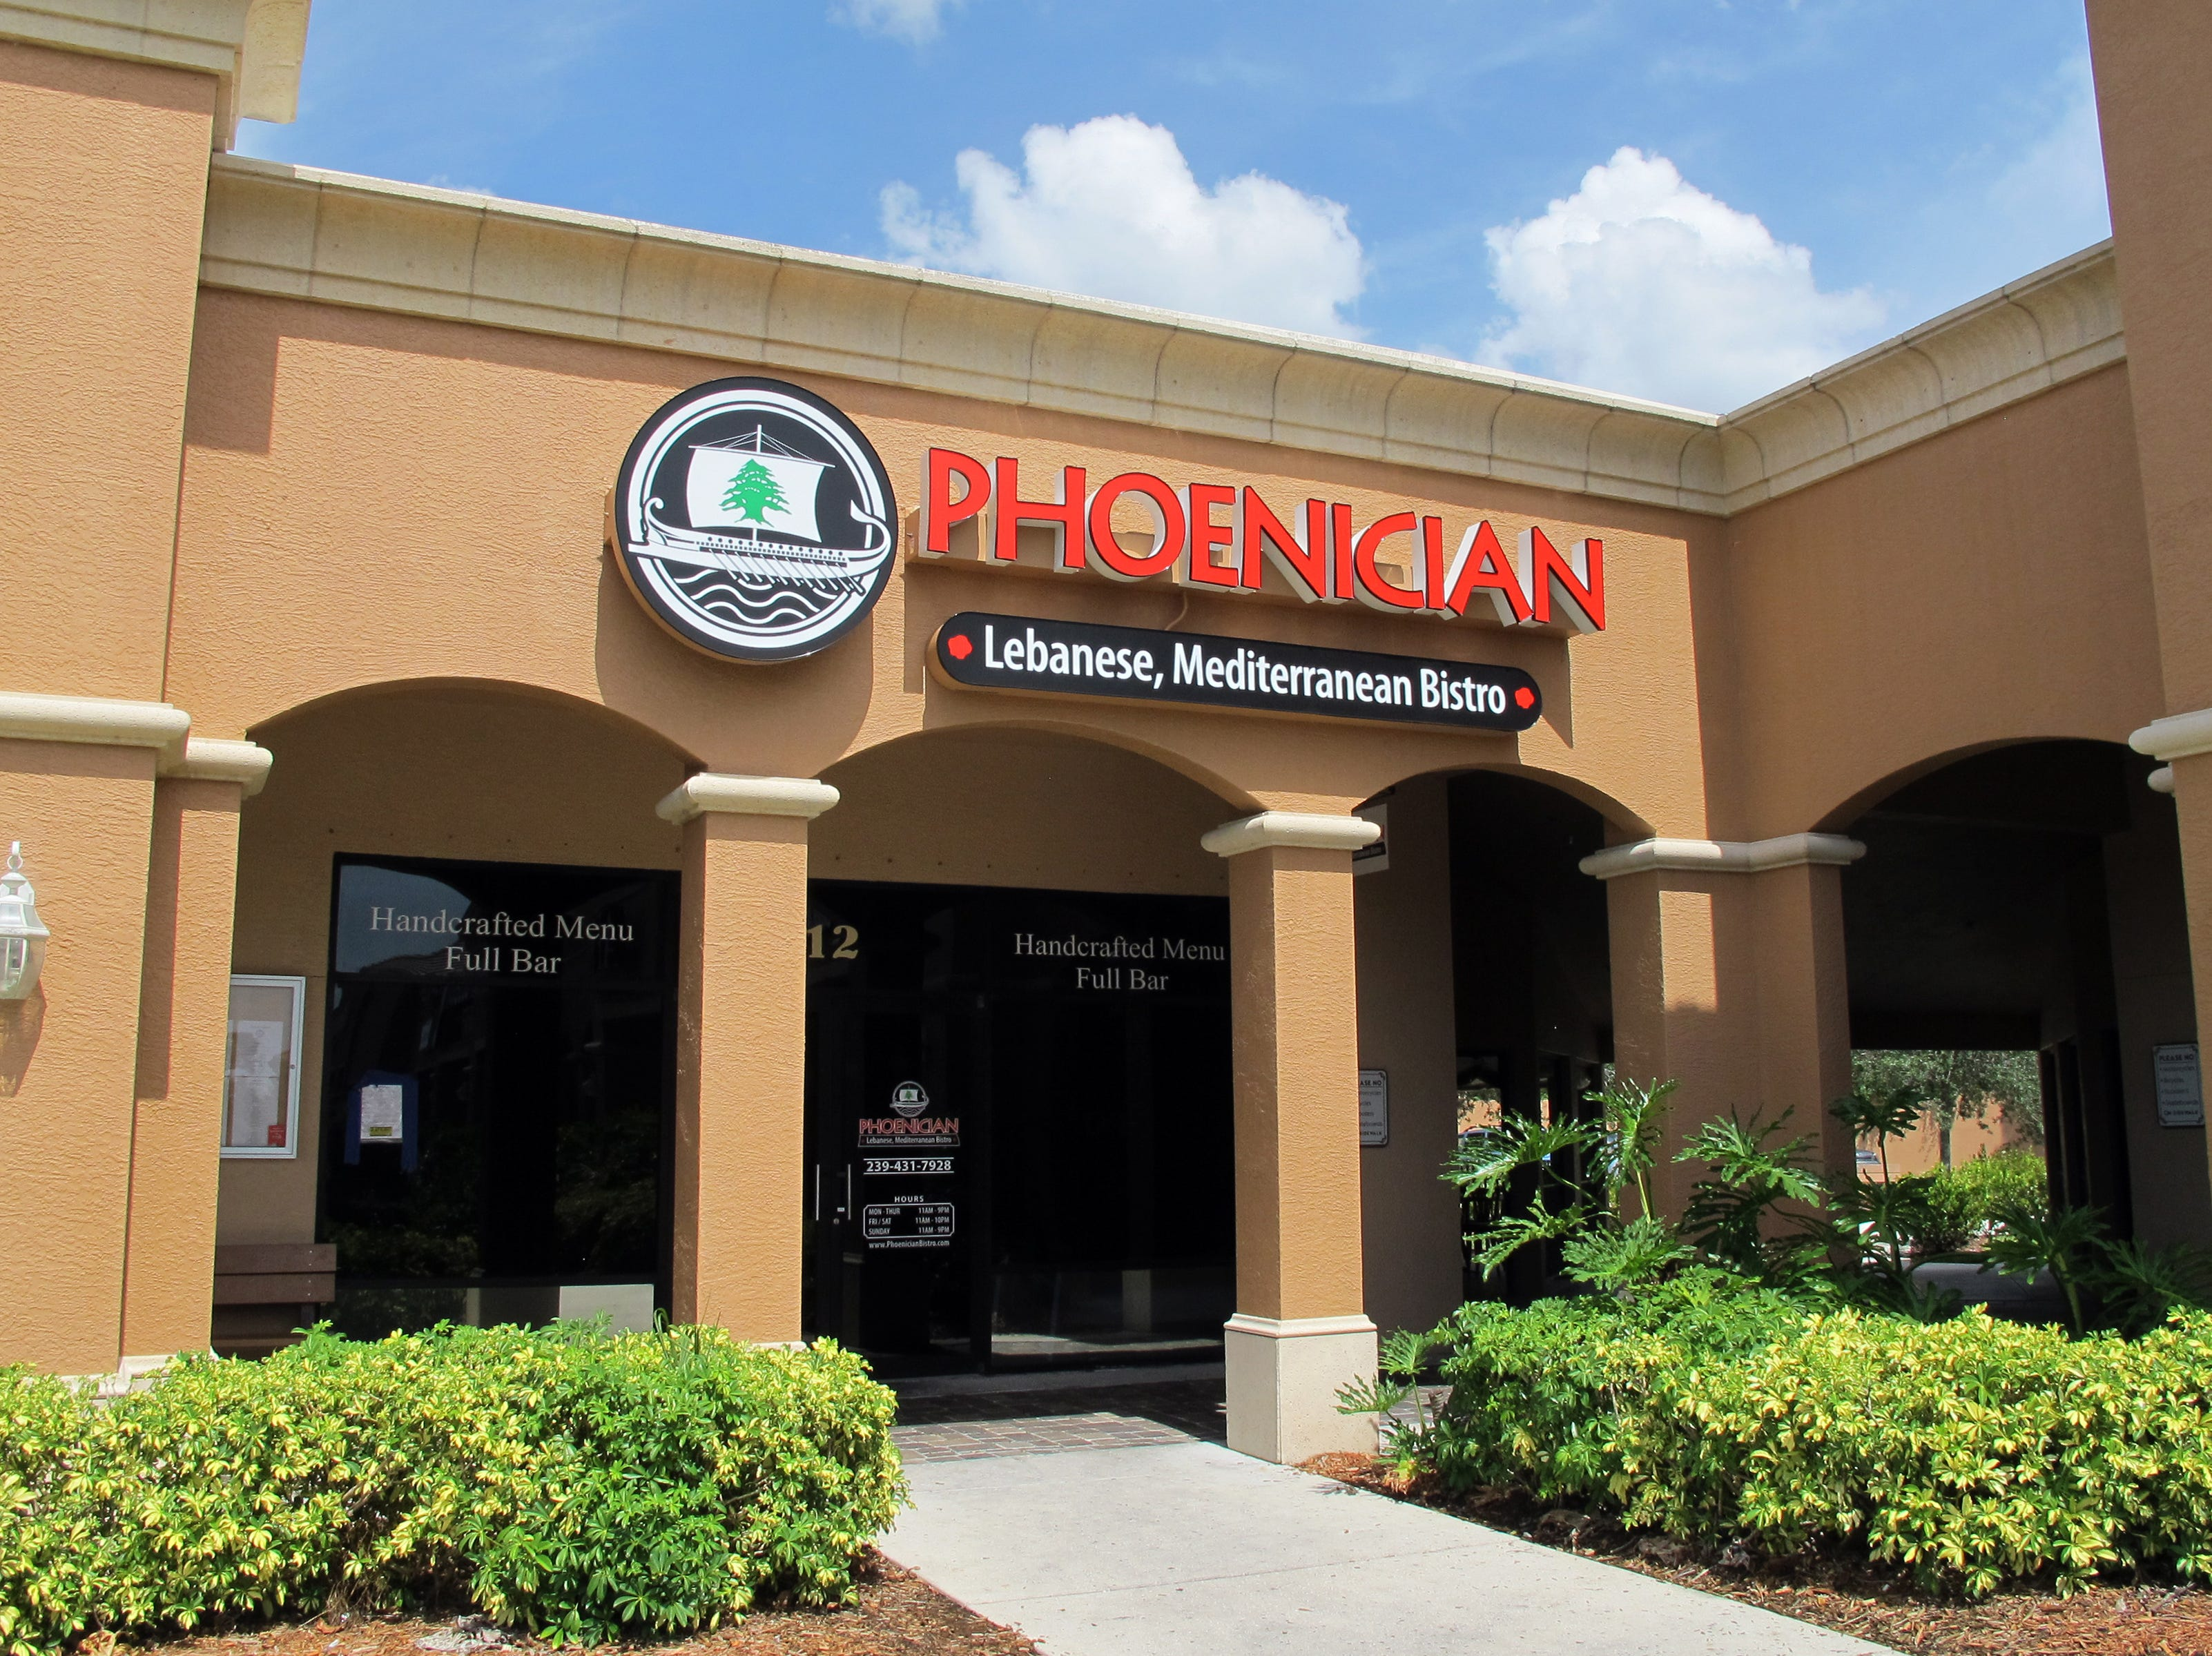 Phoenician Lebanese Bistro opened in April 2018 in the corner of Uptown Center on Immokalee Road in North Naples.